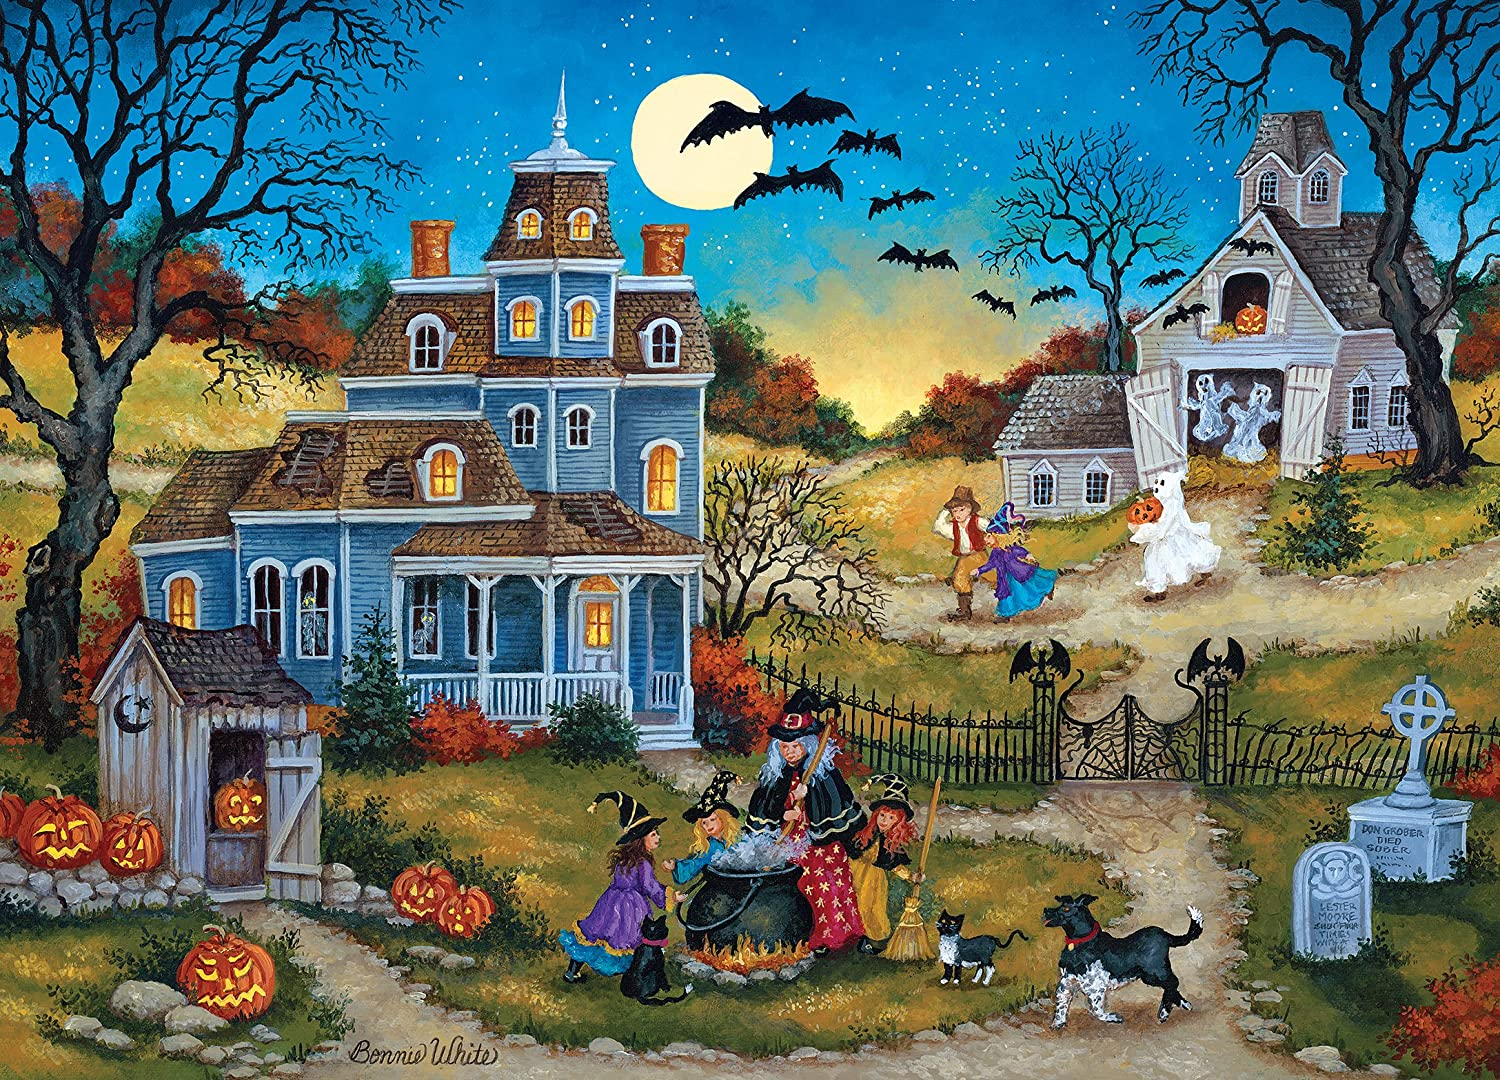 Amazon.com: MasterPieces Seasonal Three Little Witches Halloween Jigsaw Puzzle by Bonnie White, 1000-Piece: Toys & Games